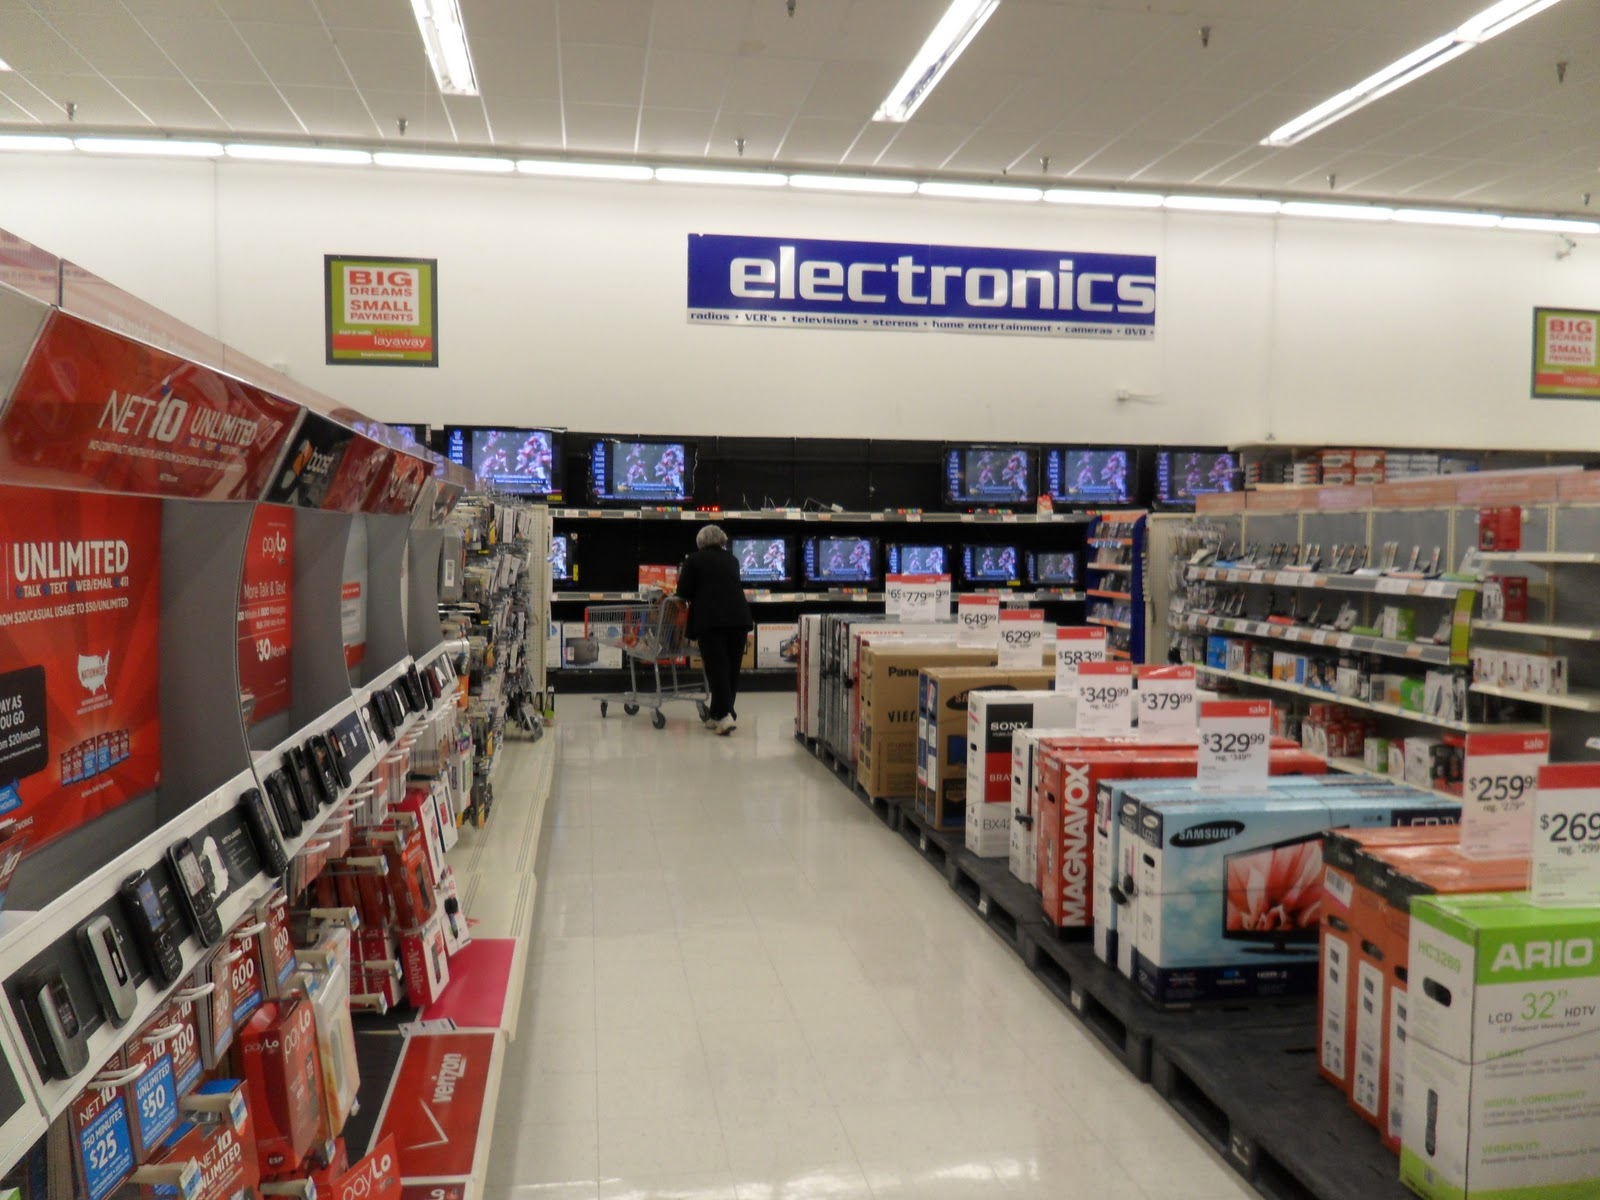 Kmart home. Deals; Coupons; Clearance; Weekly Ad; Gift Ideas. Gift Ideas; Appliances; Baby; Clothing; Electronics; Grocery; Health & Beauty.